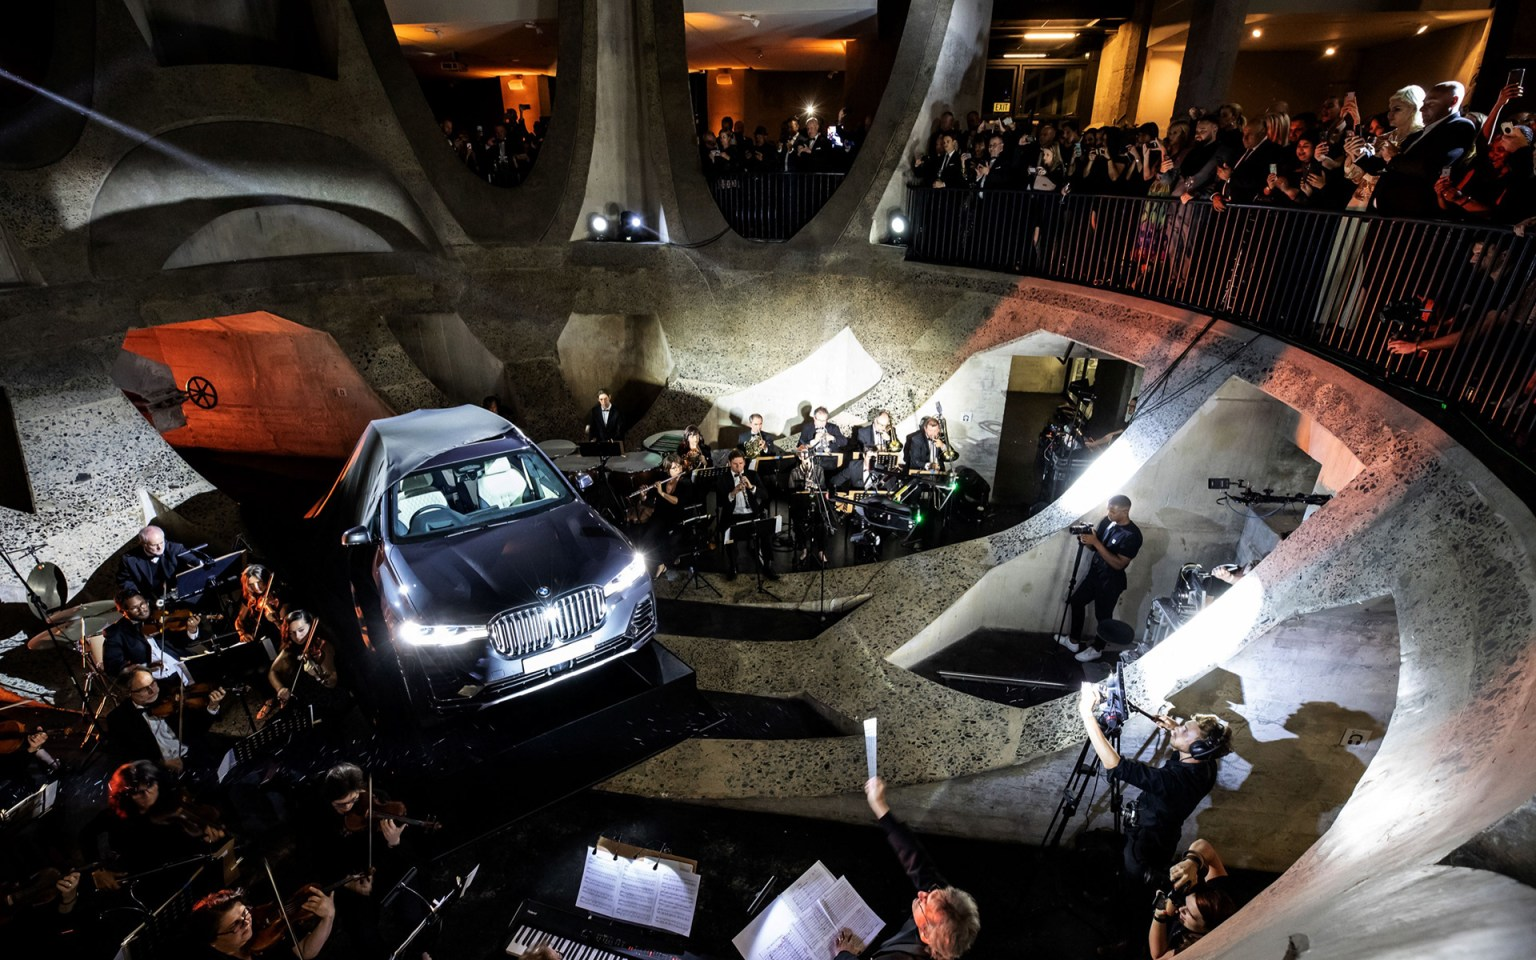 BMW X7 Global Launch Event